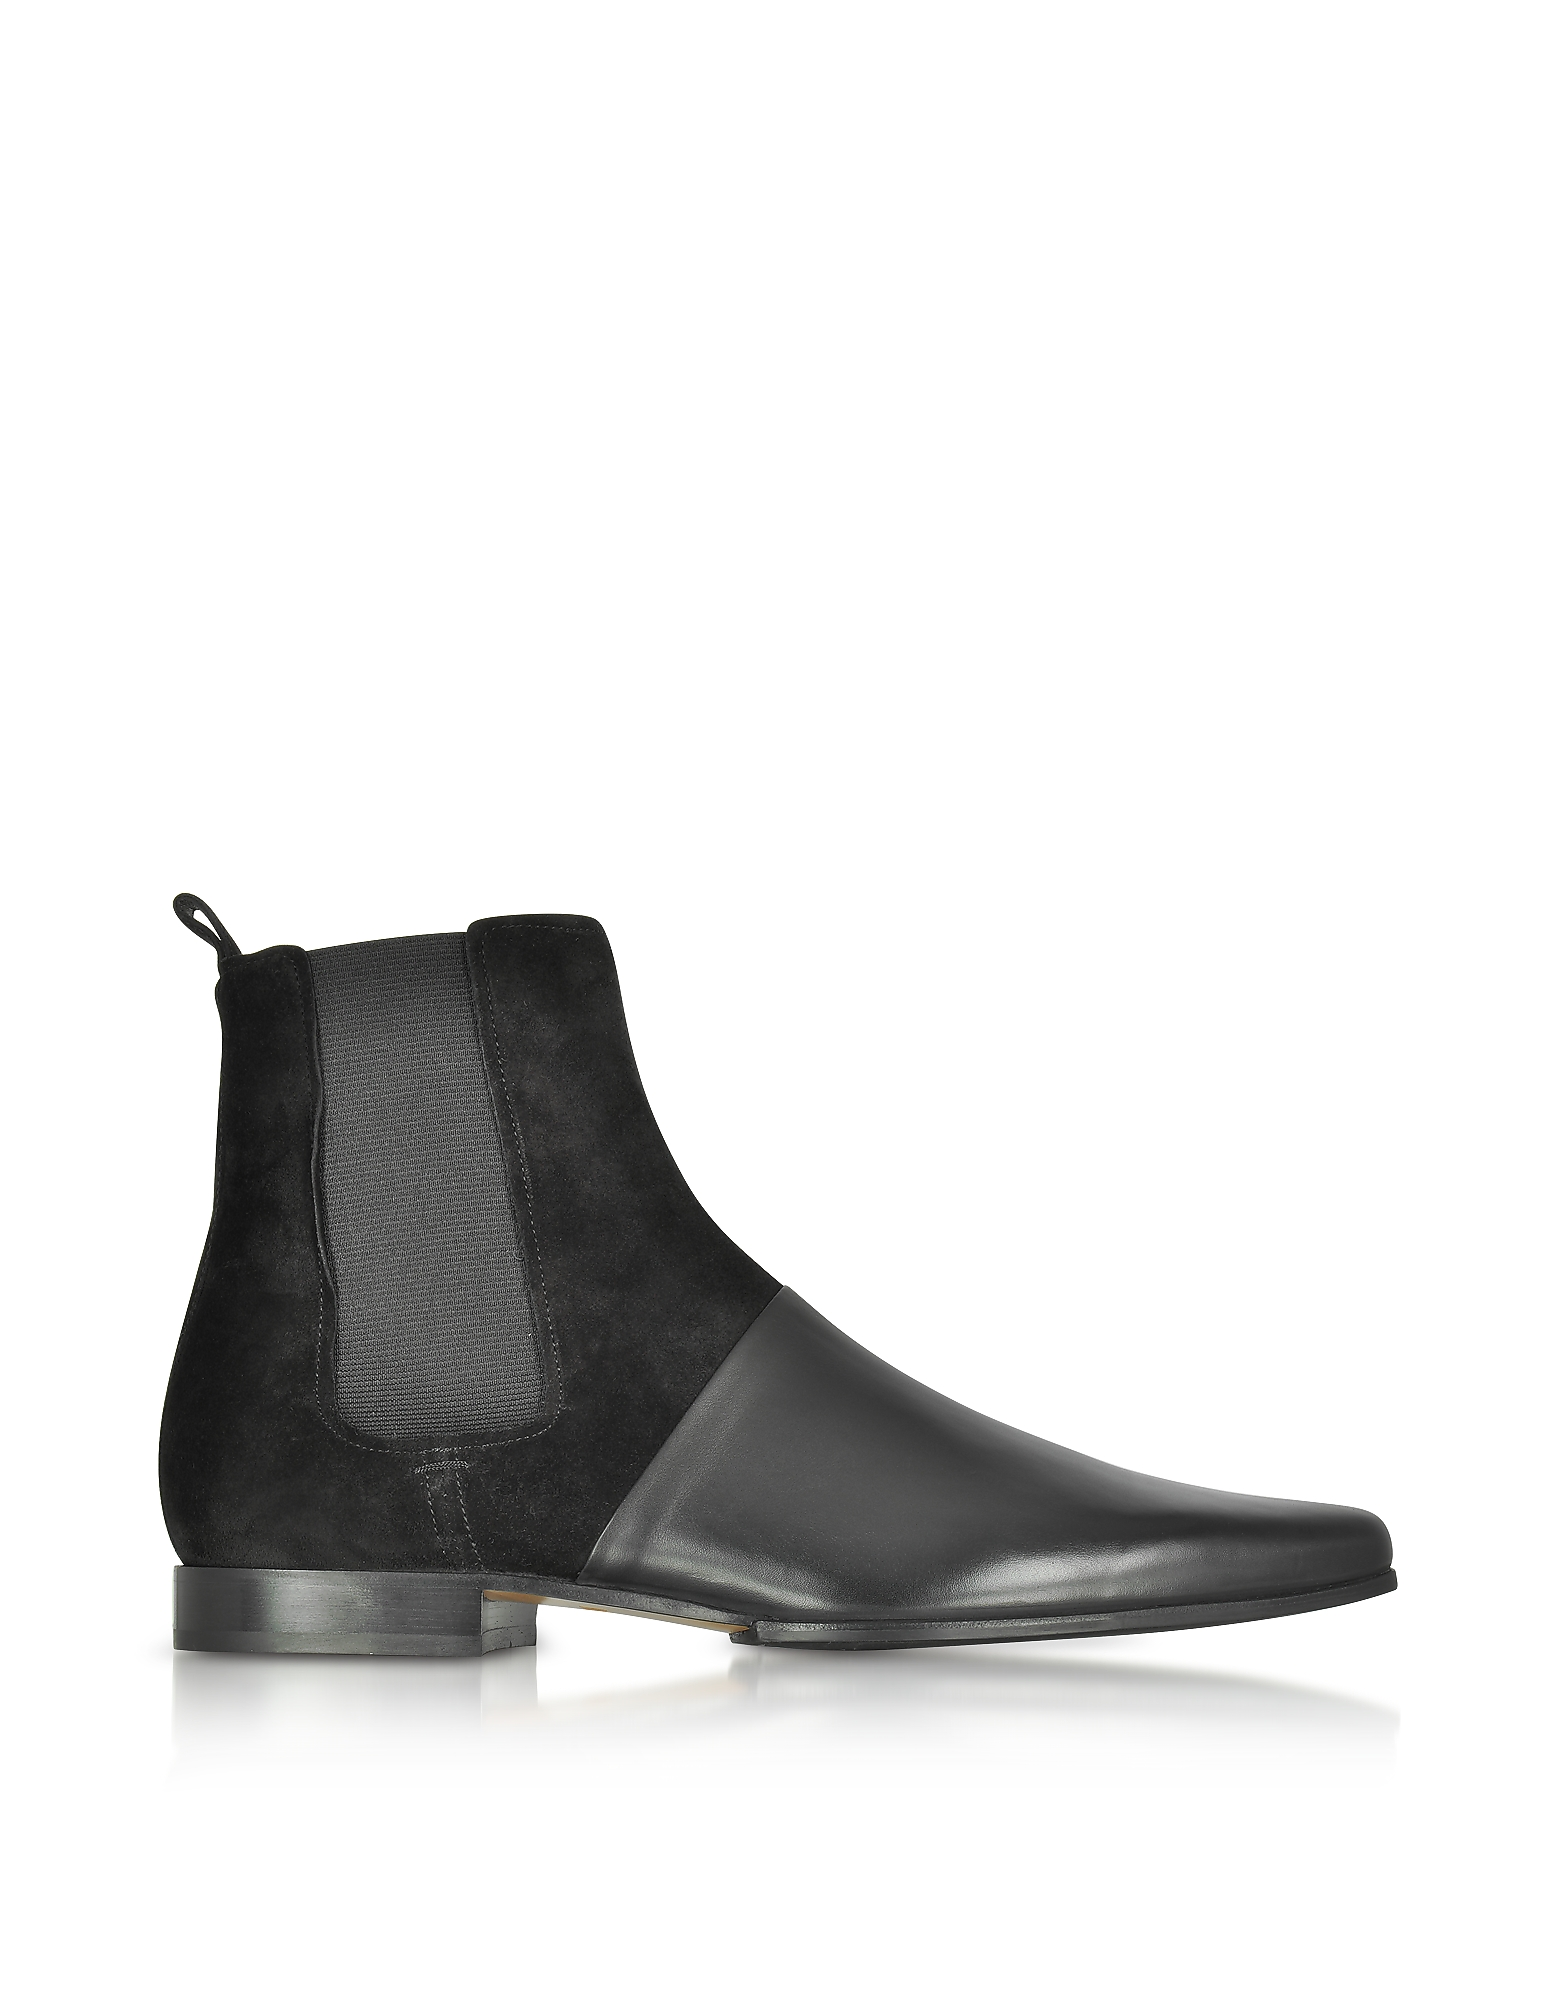 Balmain Shoes, Artemis Leather and Suede Men's Ankle Boots